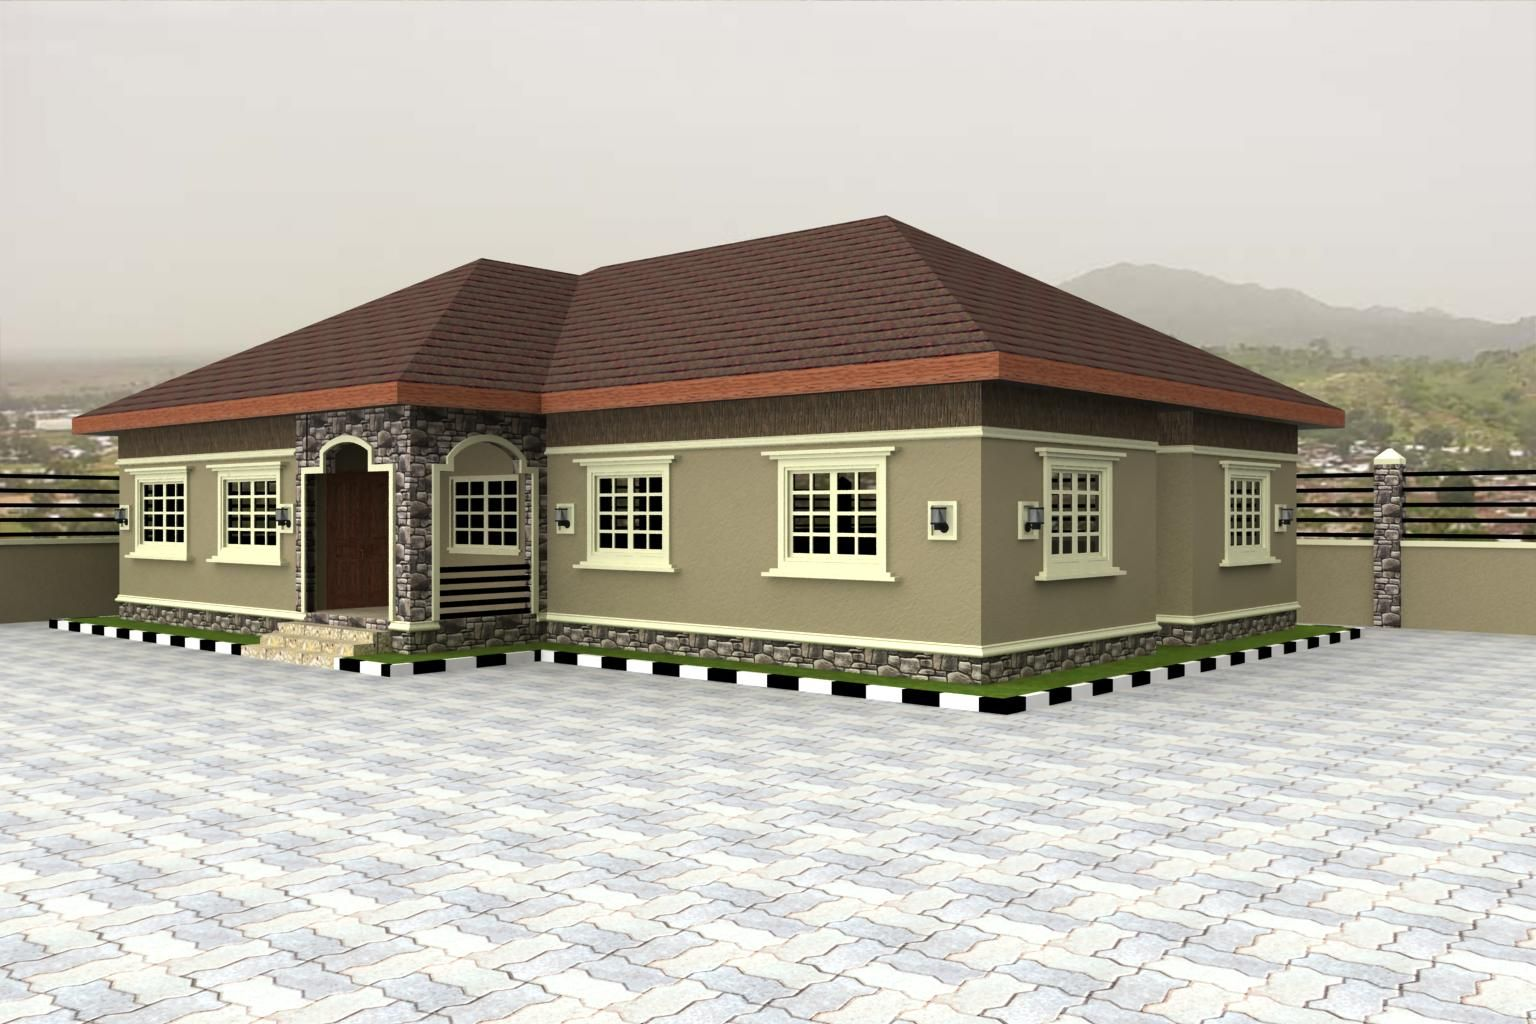 Home plans for bungalows in nigeria properties 4 nairaland for Nigeria building plans and designs